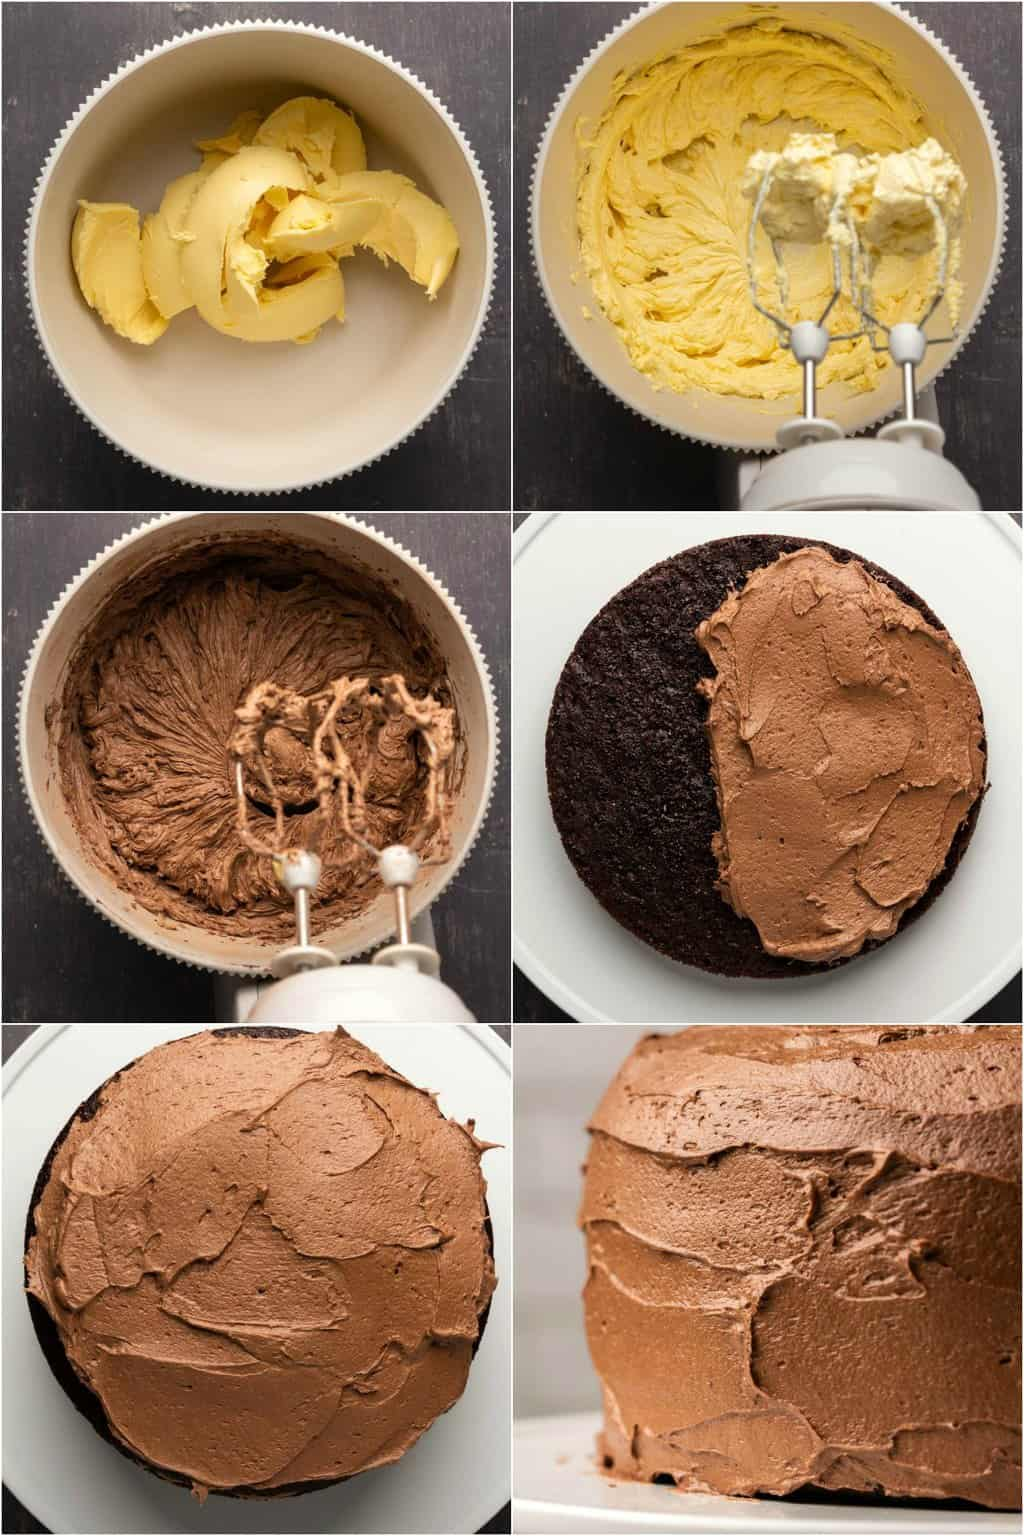 Step by step process photo collage of making vegan chocolate buttercream frosting.